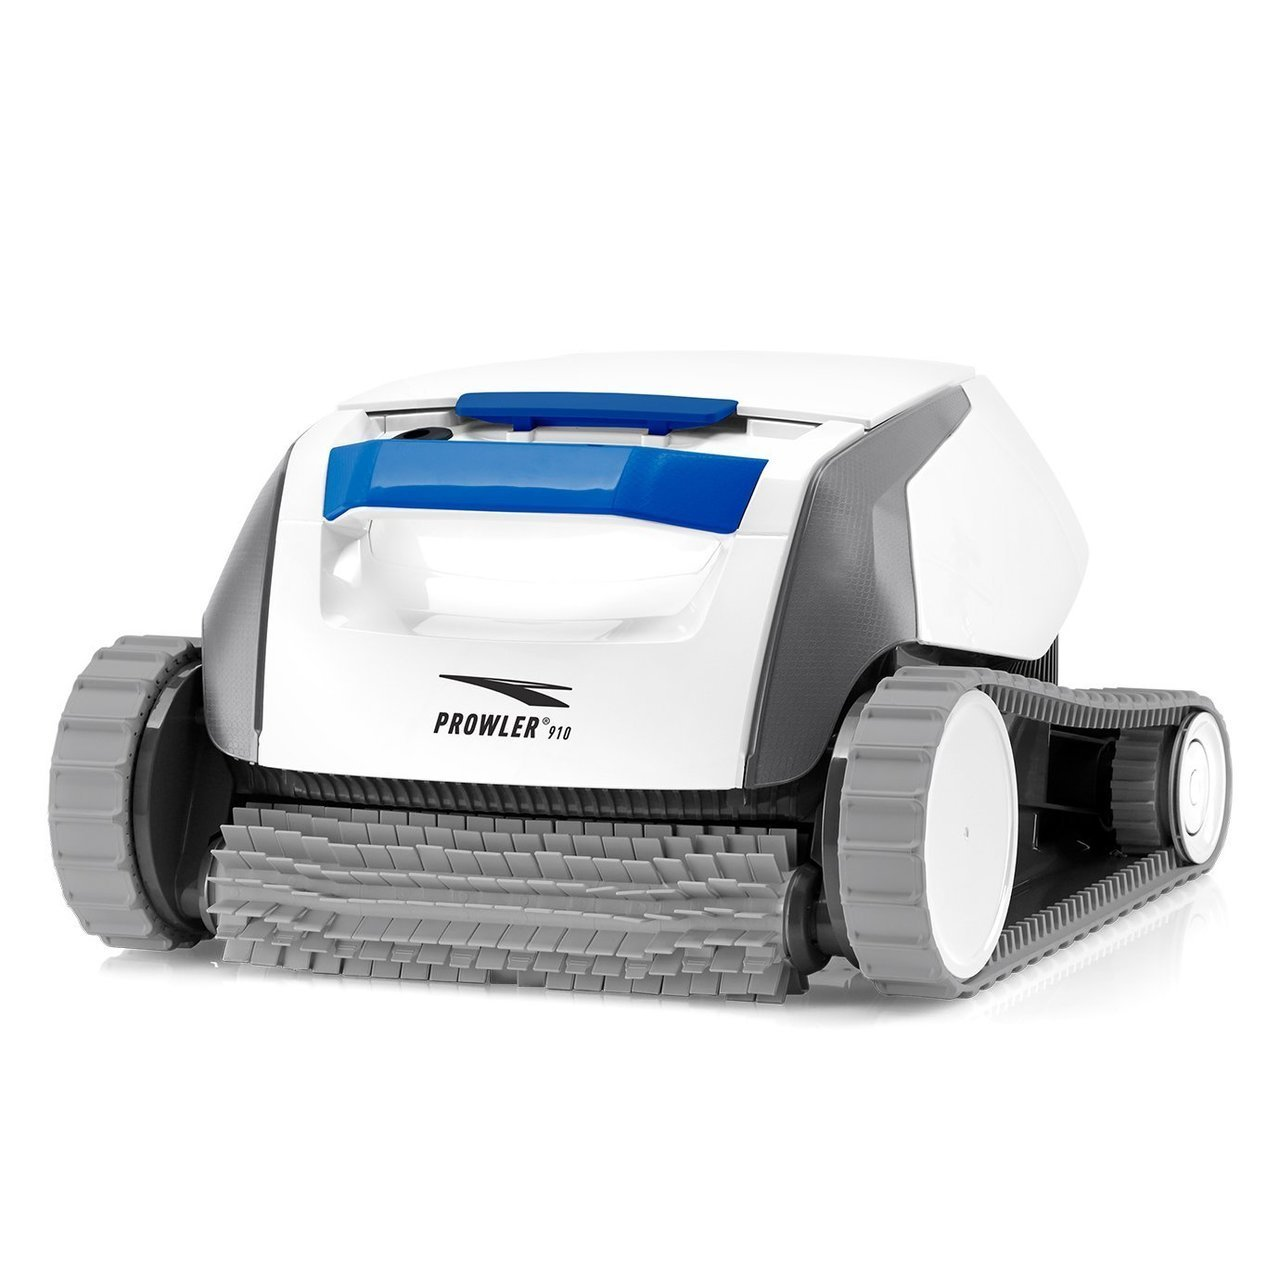 Pentair Kreepy Krauly Prowler 910 Robot Pool Cleaner Cleaning Robots Pentair